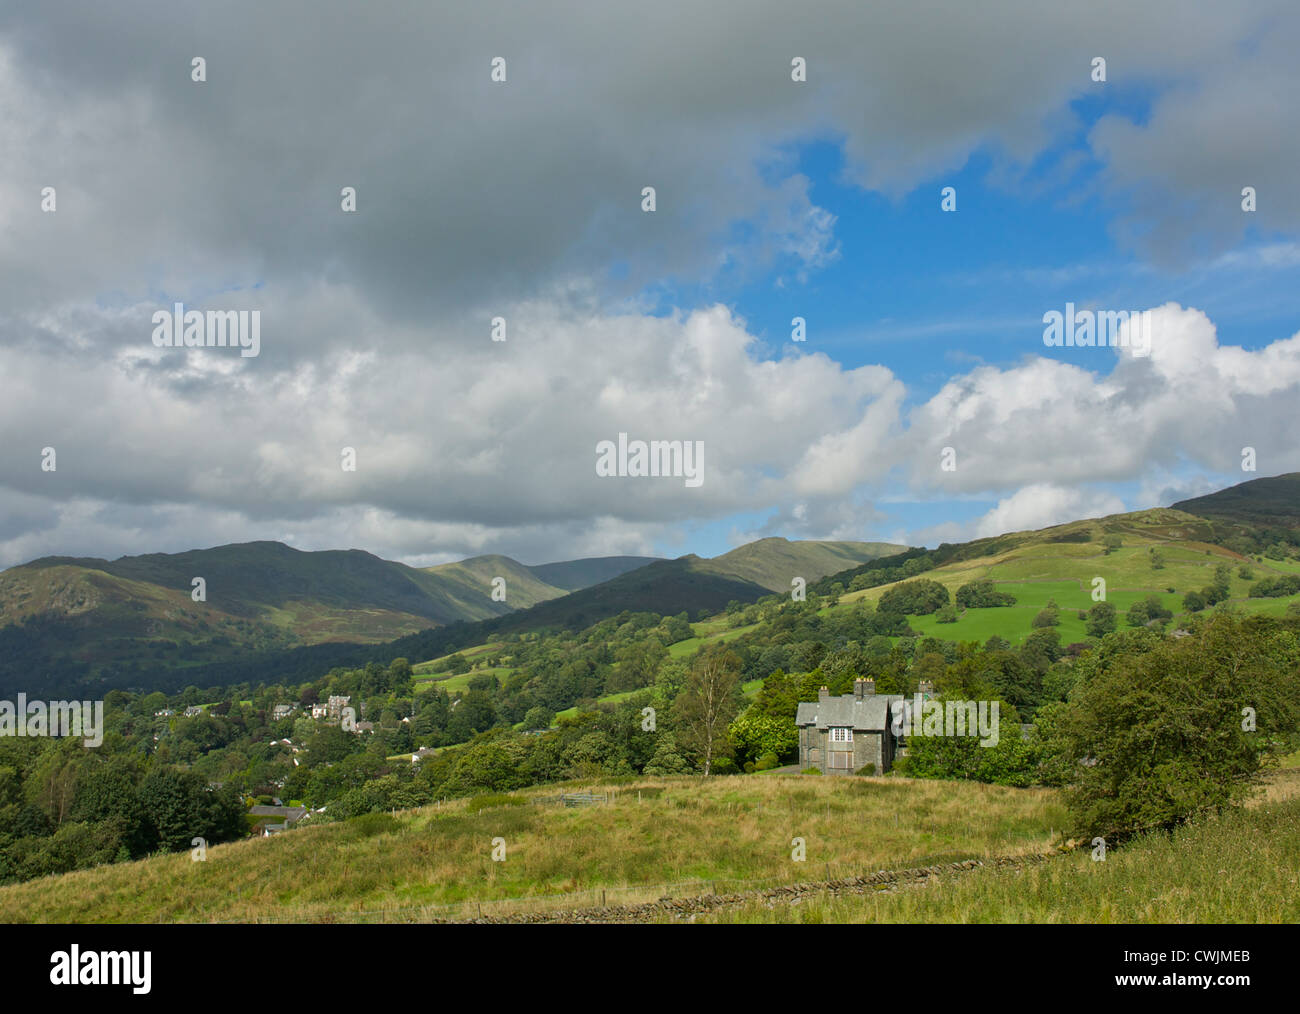 Kelsick Grammar School - now closed - on the outskirts of Ambleside, looking towards Red Screes and the Fairfield - Stock Image